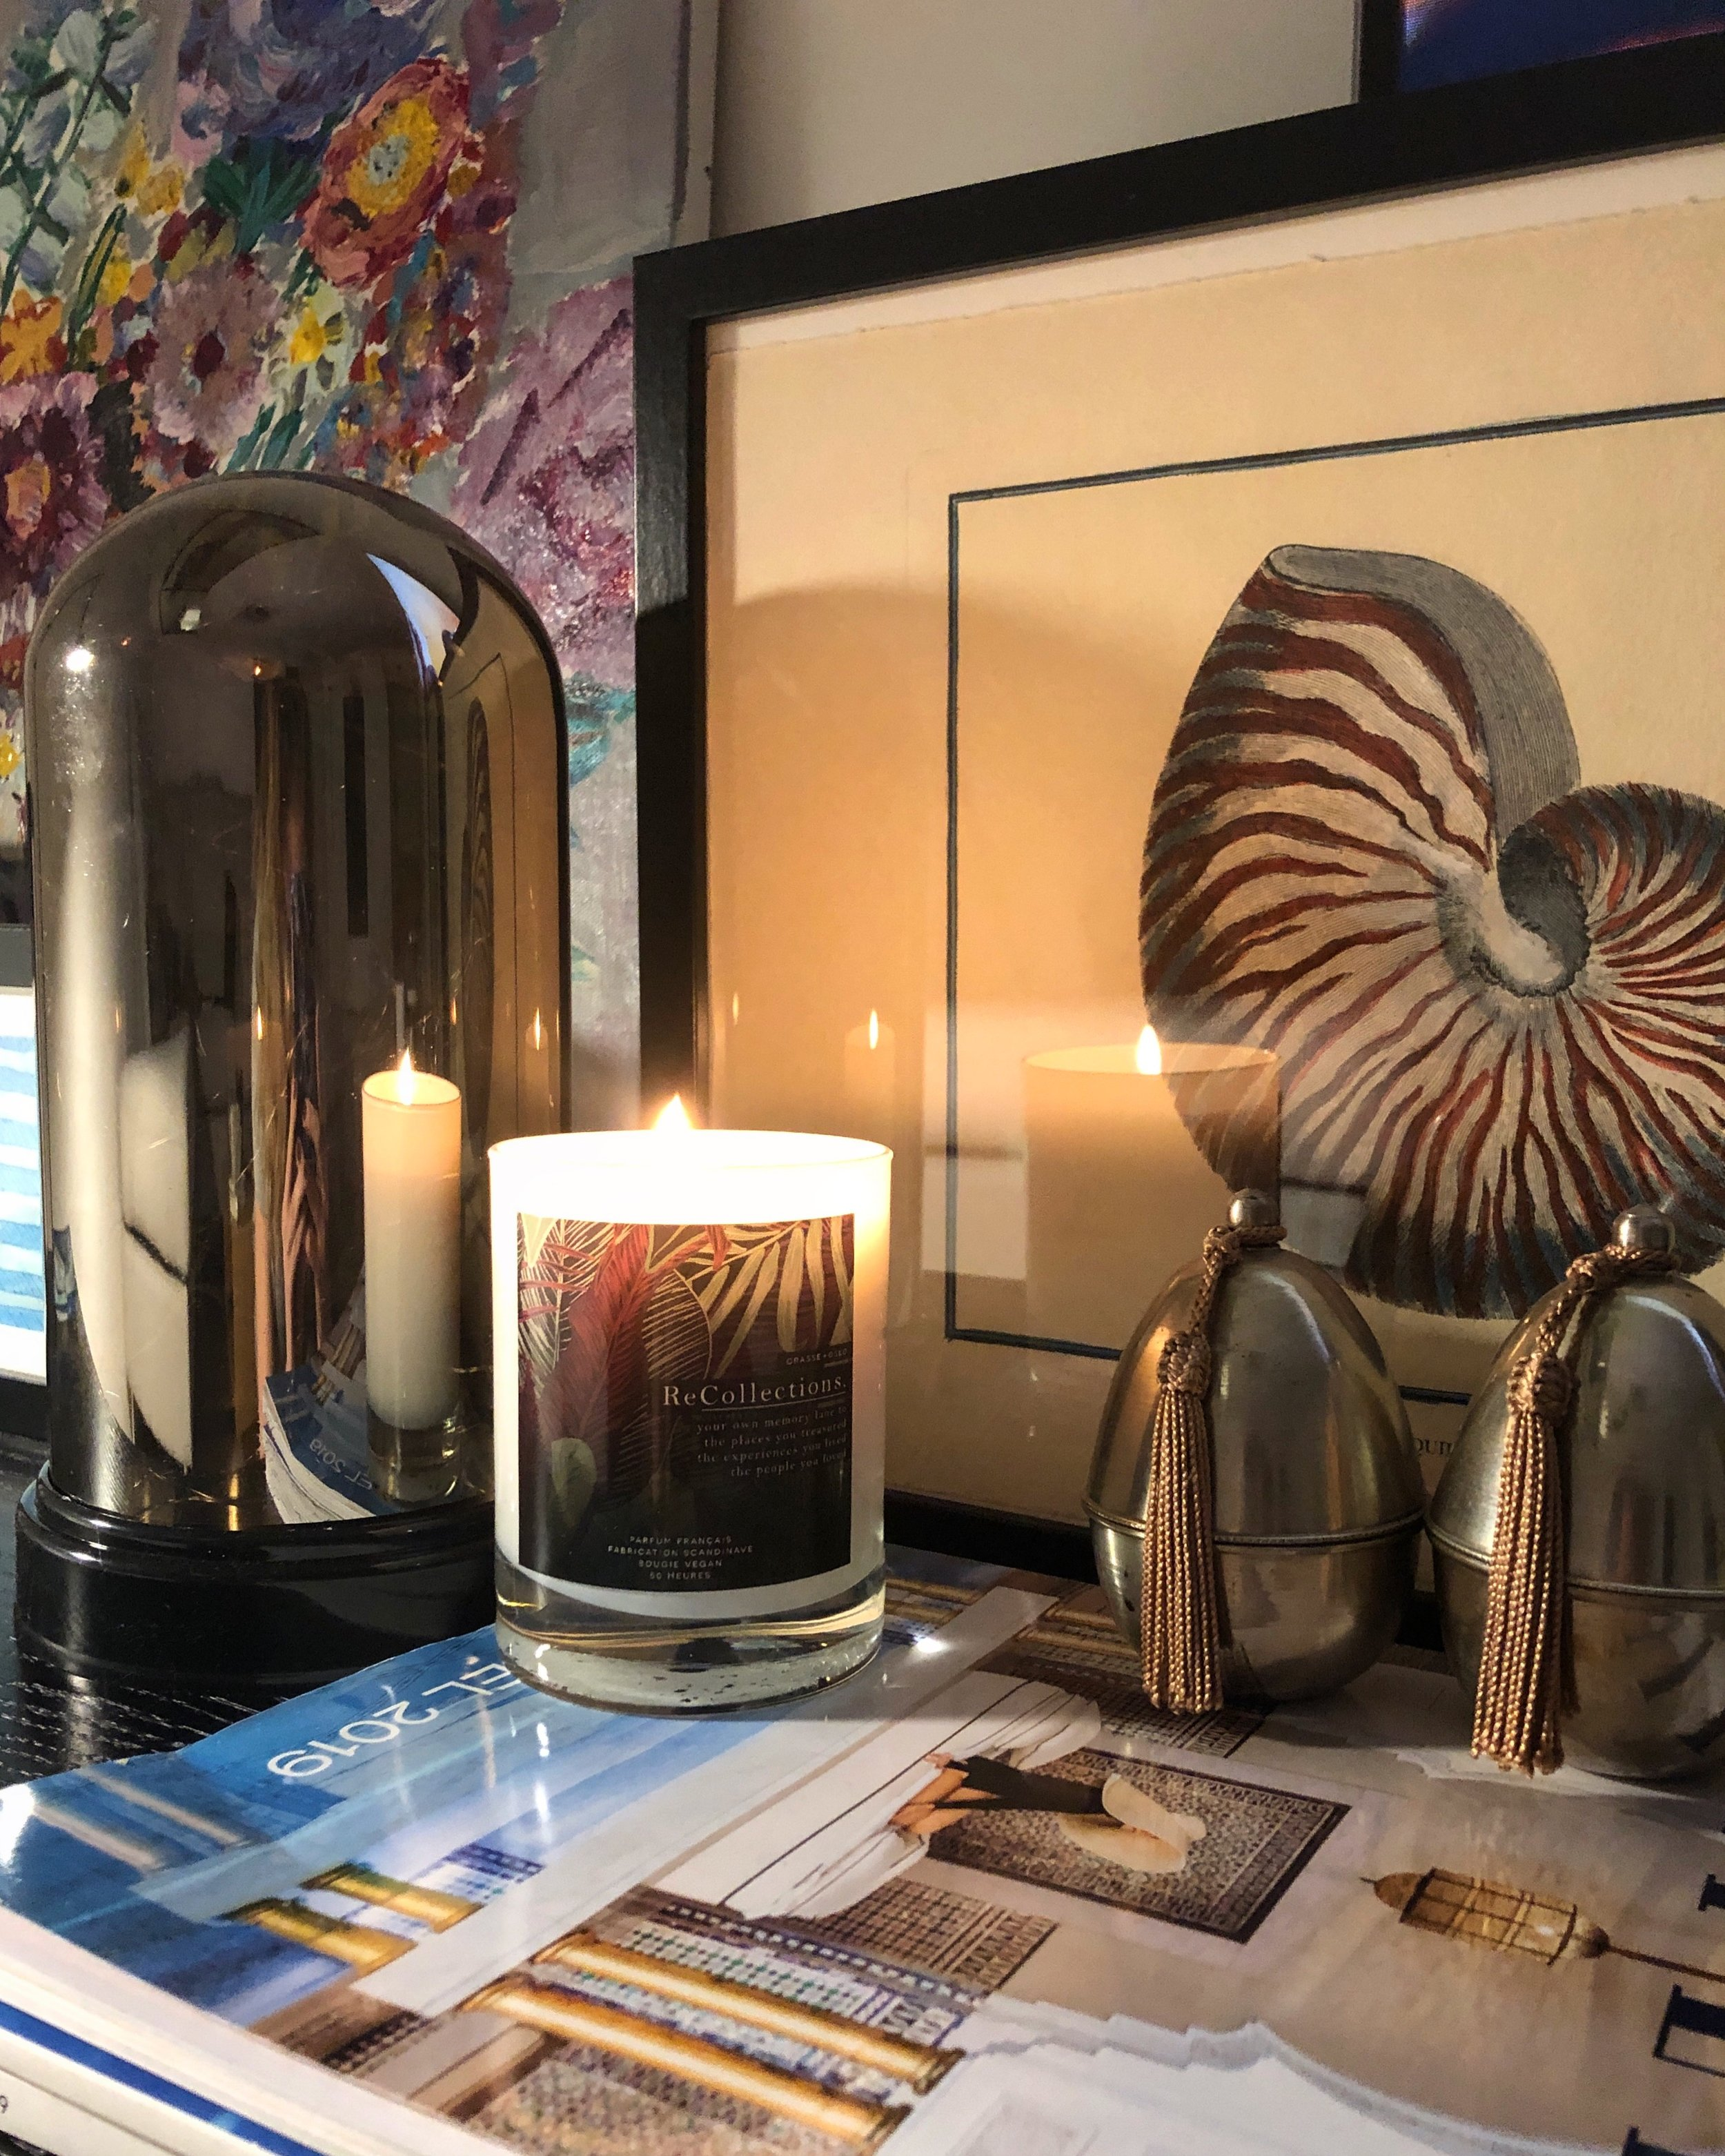 Recollections candles3.JPG